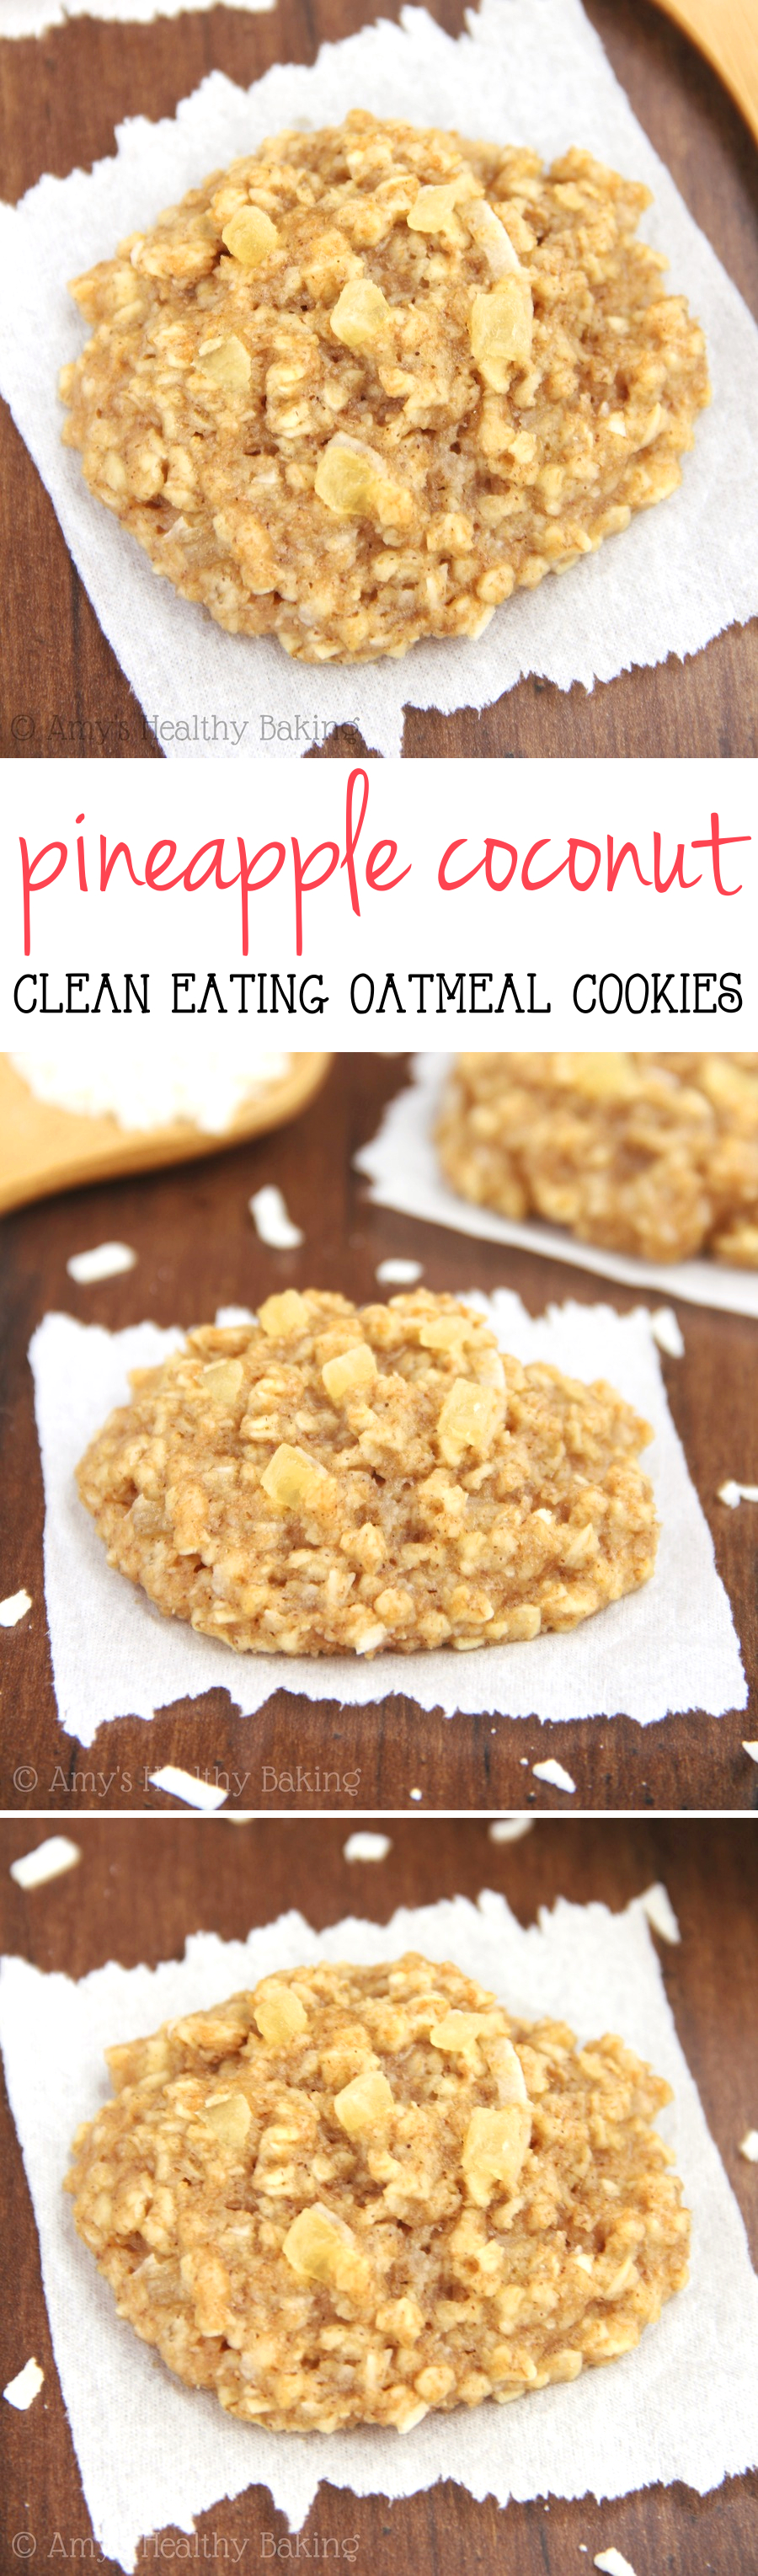 Clean-Eating Pineapple Coconut Oatmeal Cookies -- these skinny cookies don't taste healthy at all! You'll never need another oatmeal cookie recipe again!